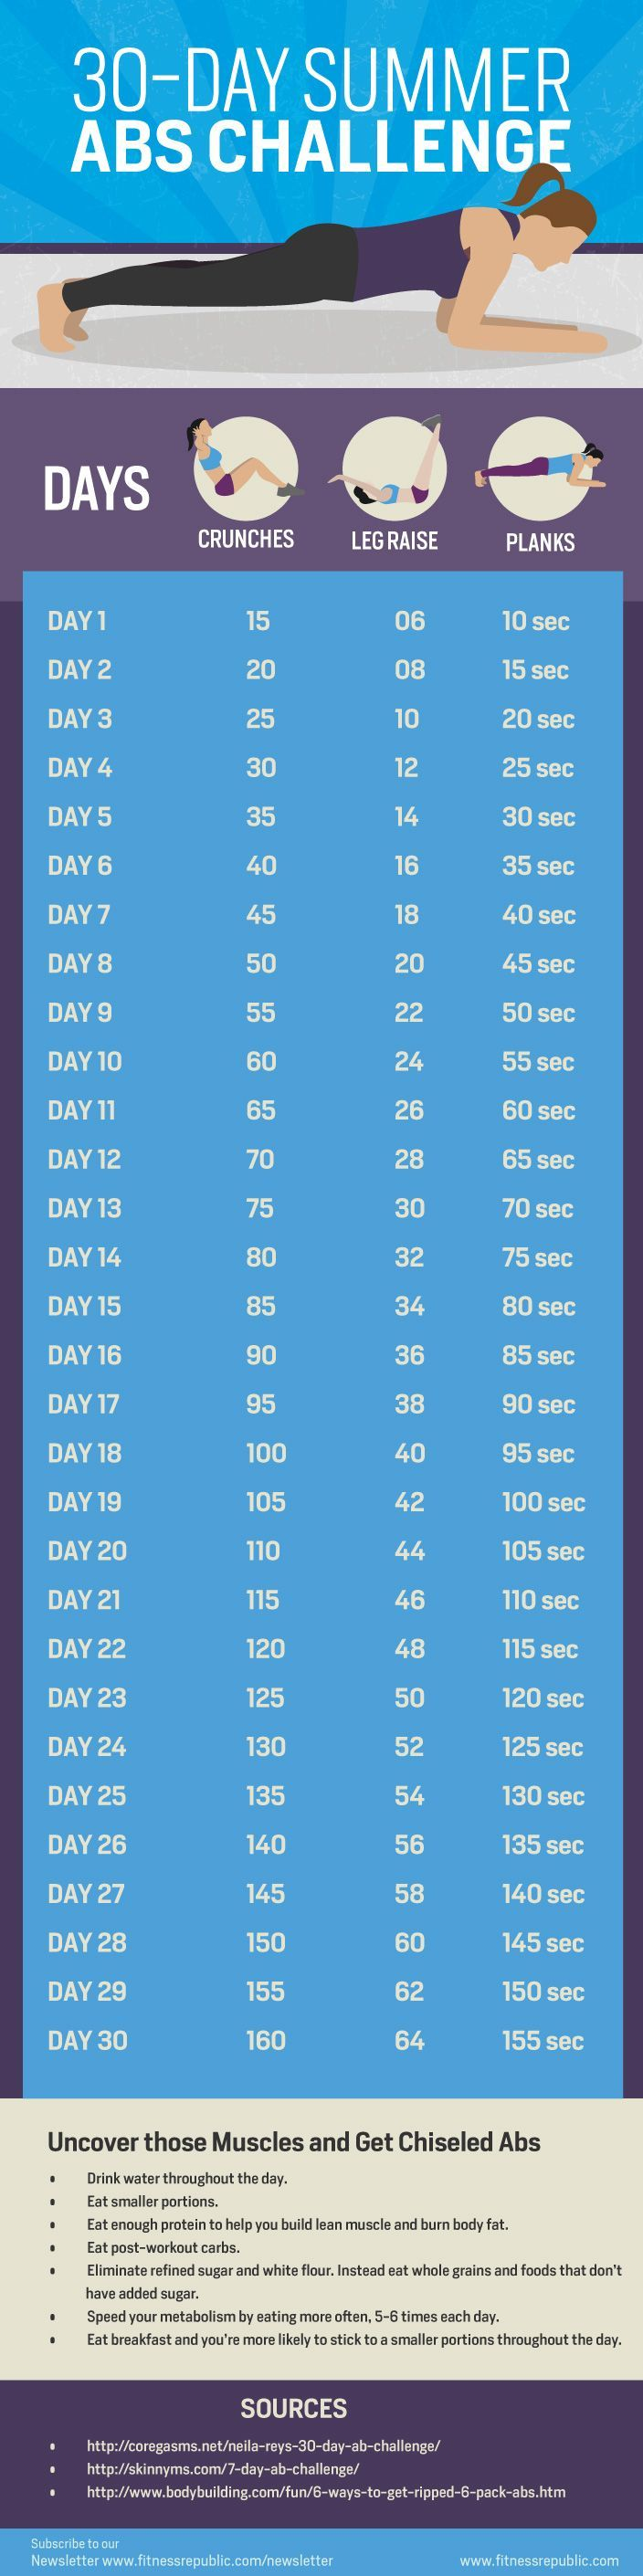 30-Day Summer Abs Challenge | Fitness Republic